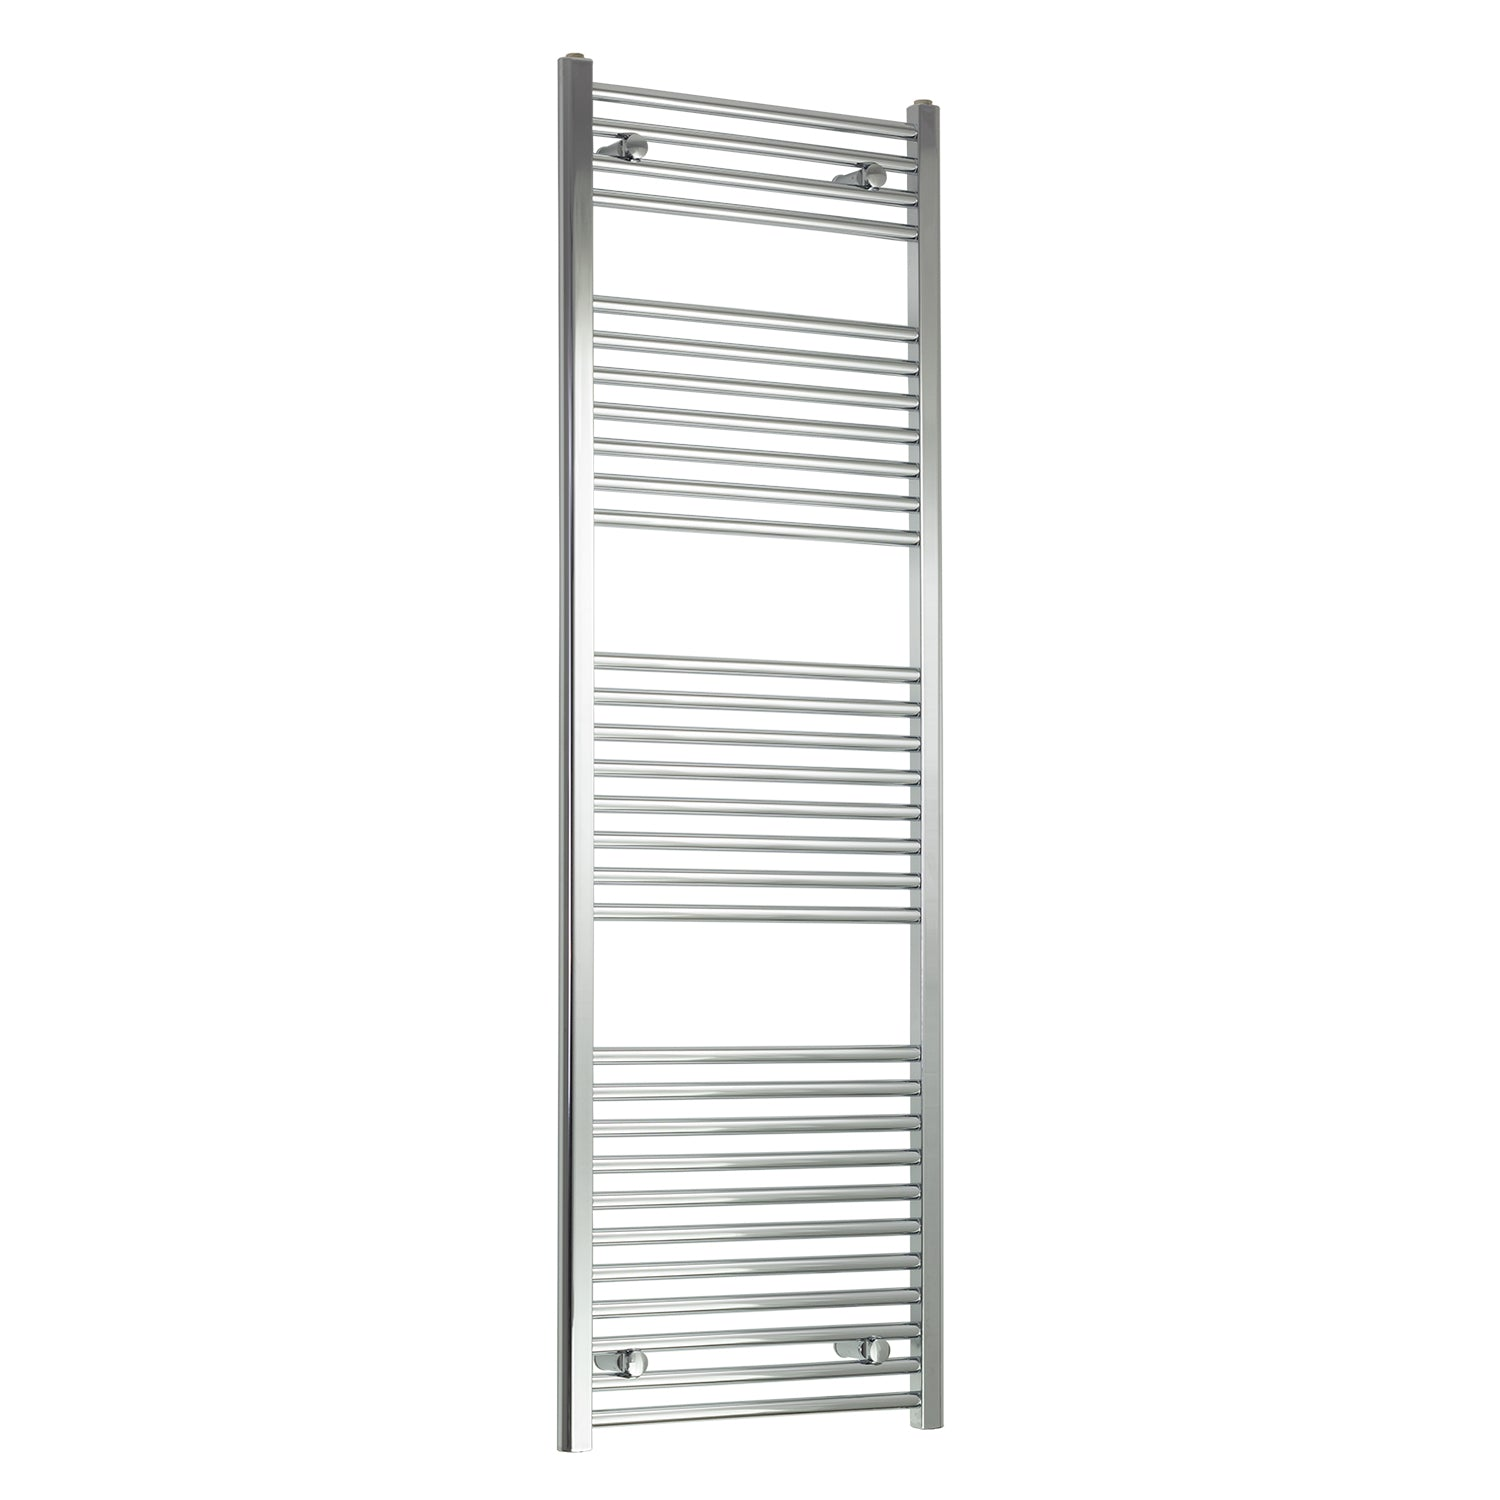 550mm Wide 1700mm High Chrome Towel Rail Radiator